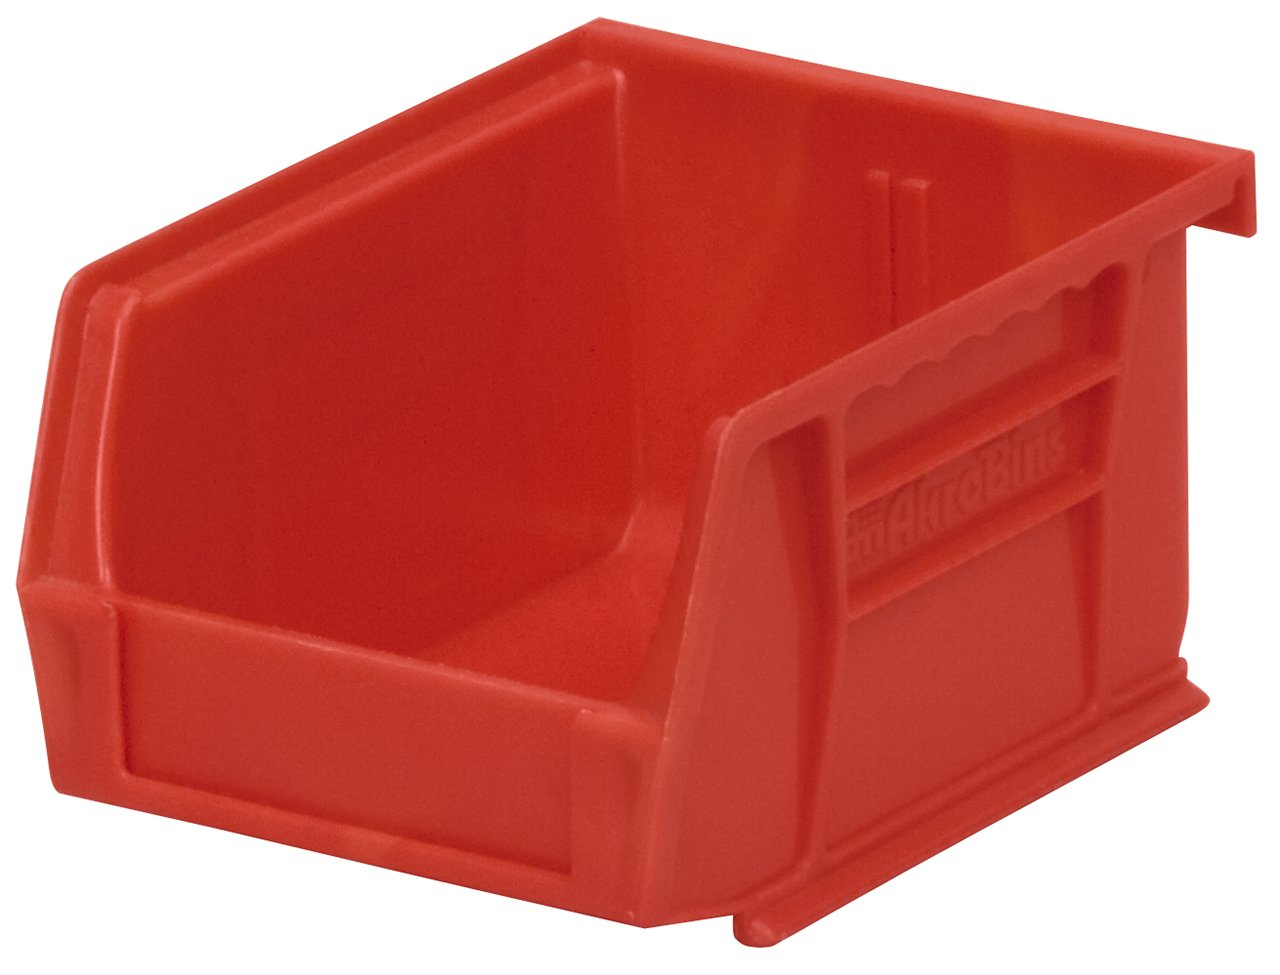 Akro-Mils 30210 Plastic Storage Stacking Hanging Akro Bin, 5-Inch by 4-Inch by 3-Inch, Red, Case of 24